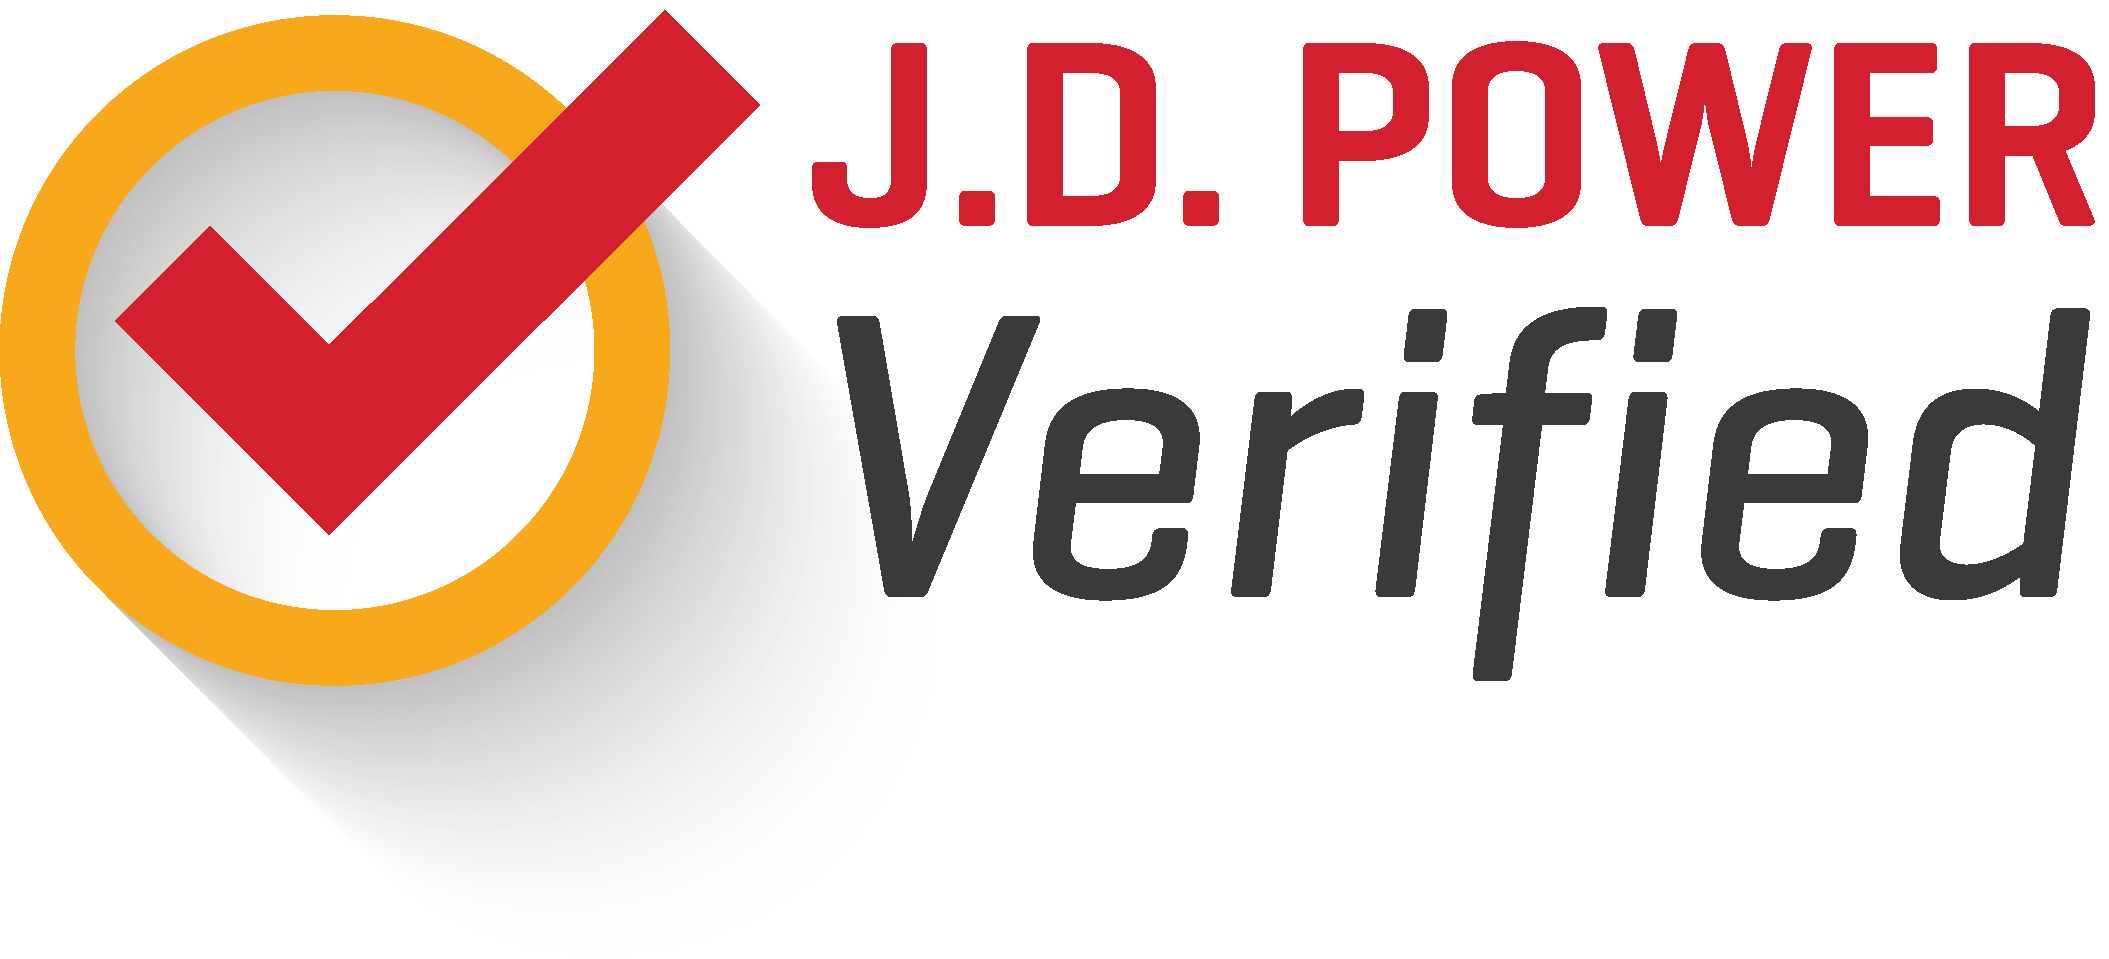 jd power logo